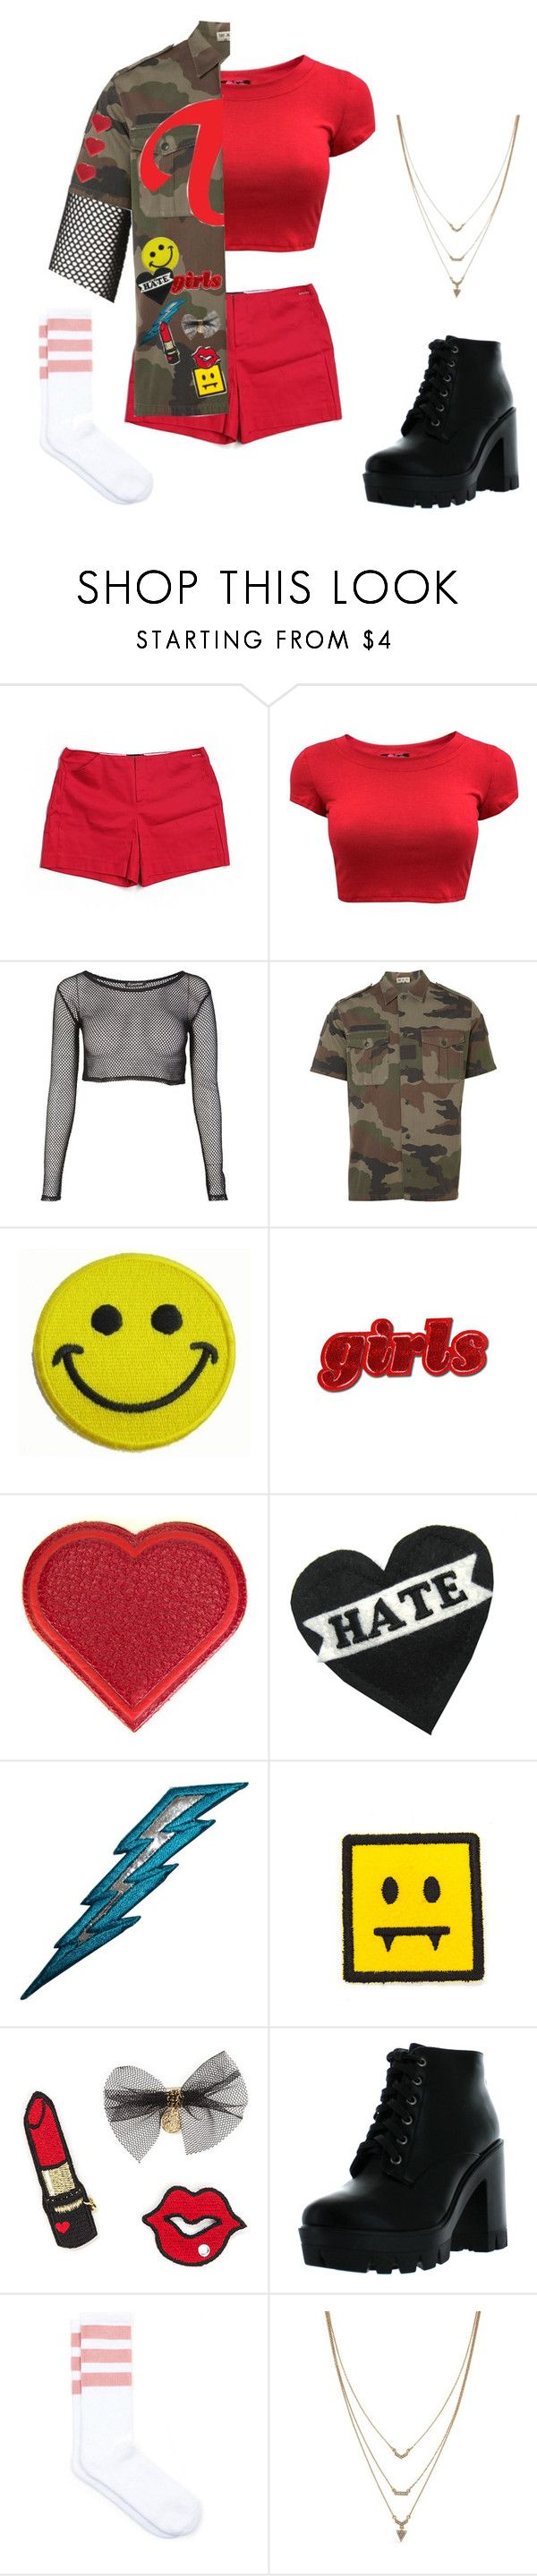 """""""ooh ahh #2"""" by harleey-nicolee ❤ liked on Polyvore featuring Tommy Hilfiger, Peace Corps, Hollywood Mirror, Anya Hindmarch, Bamboo and Jessica Simpson"""